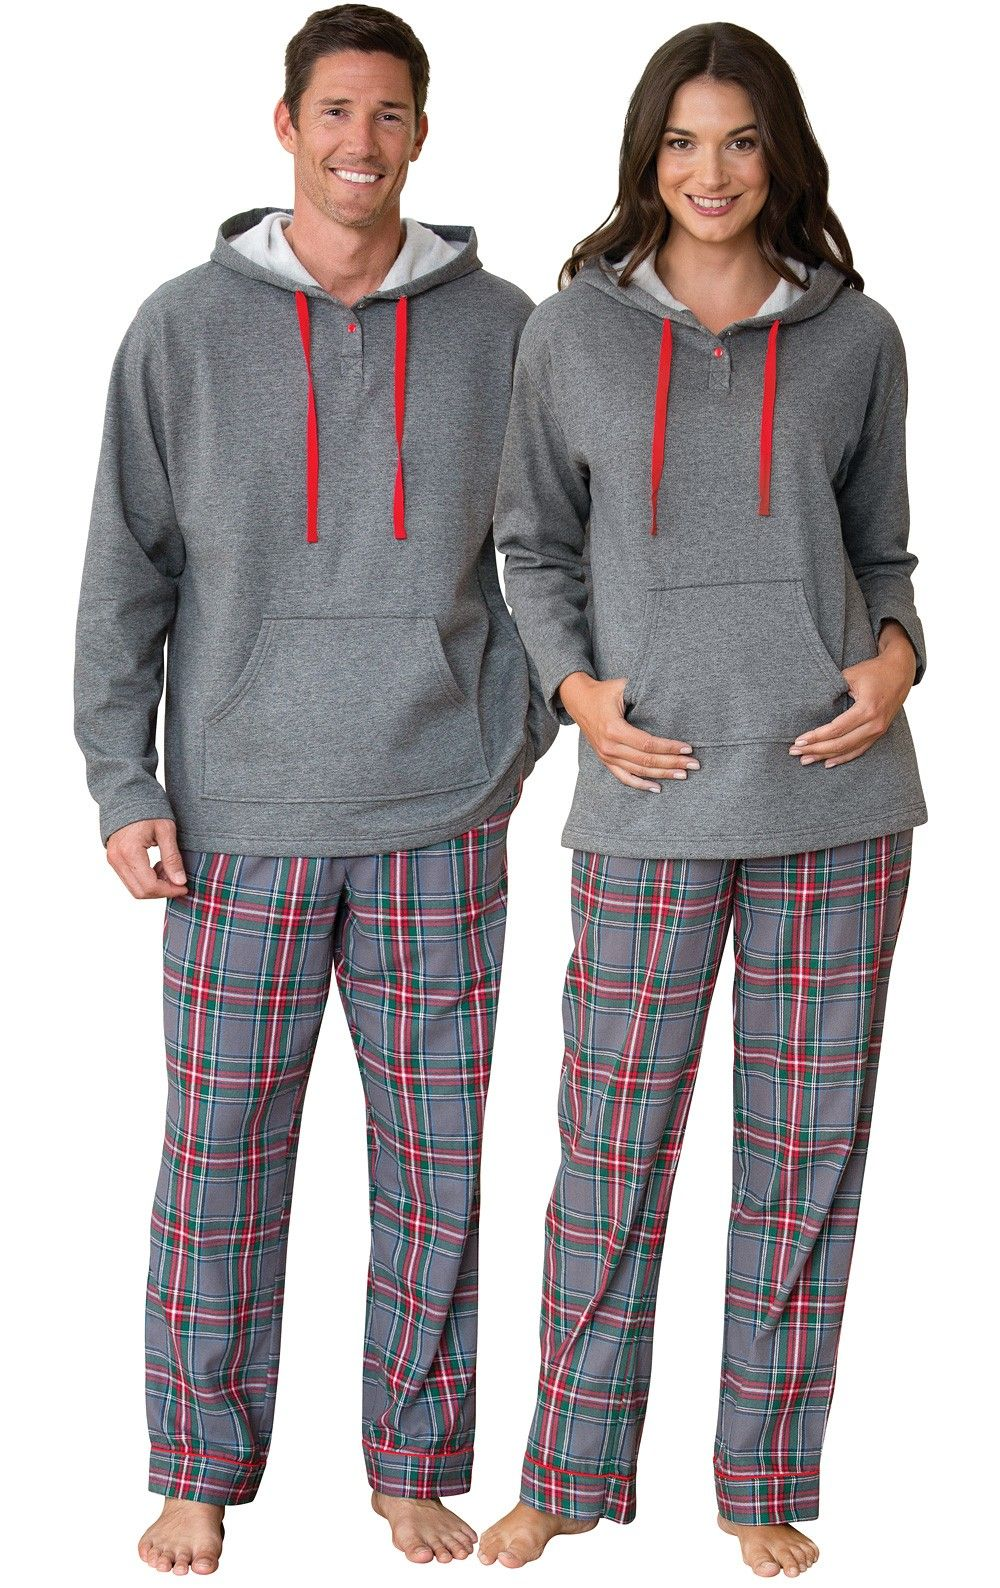 Gray Plaid Hooded His & Hers Matching Pajamas in 2020